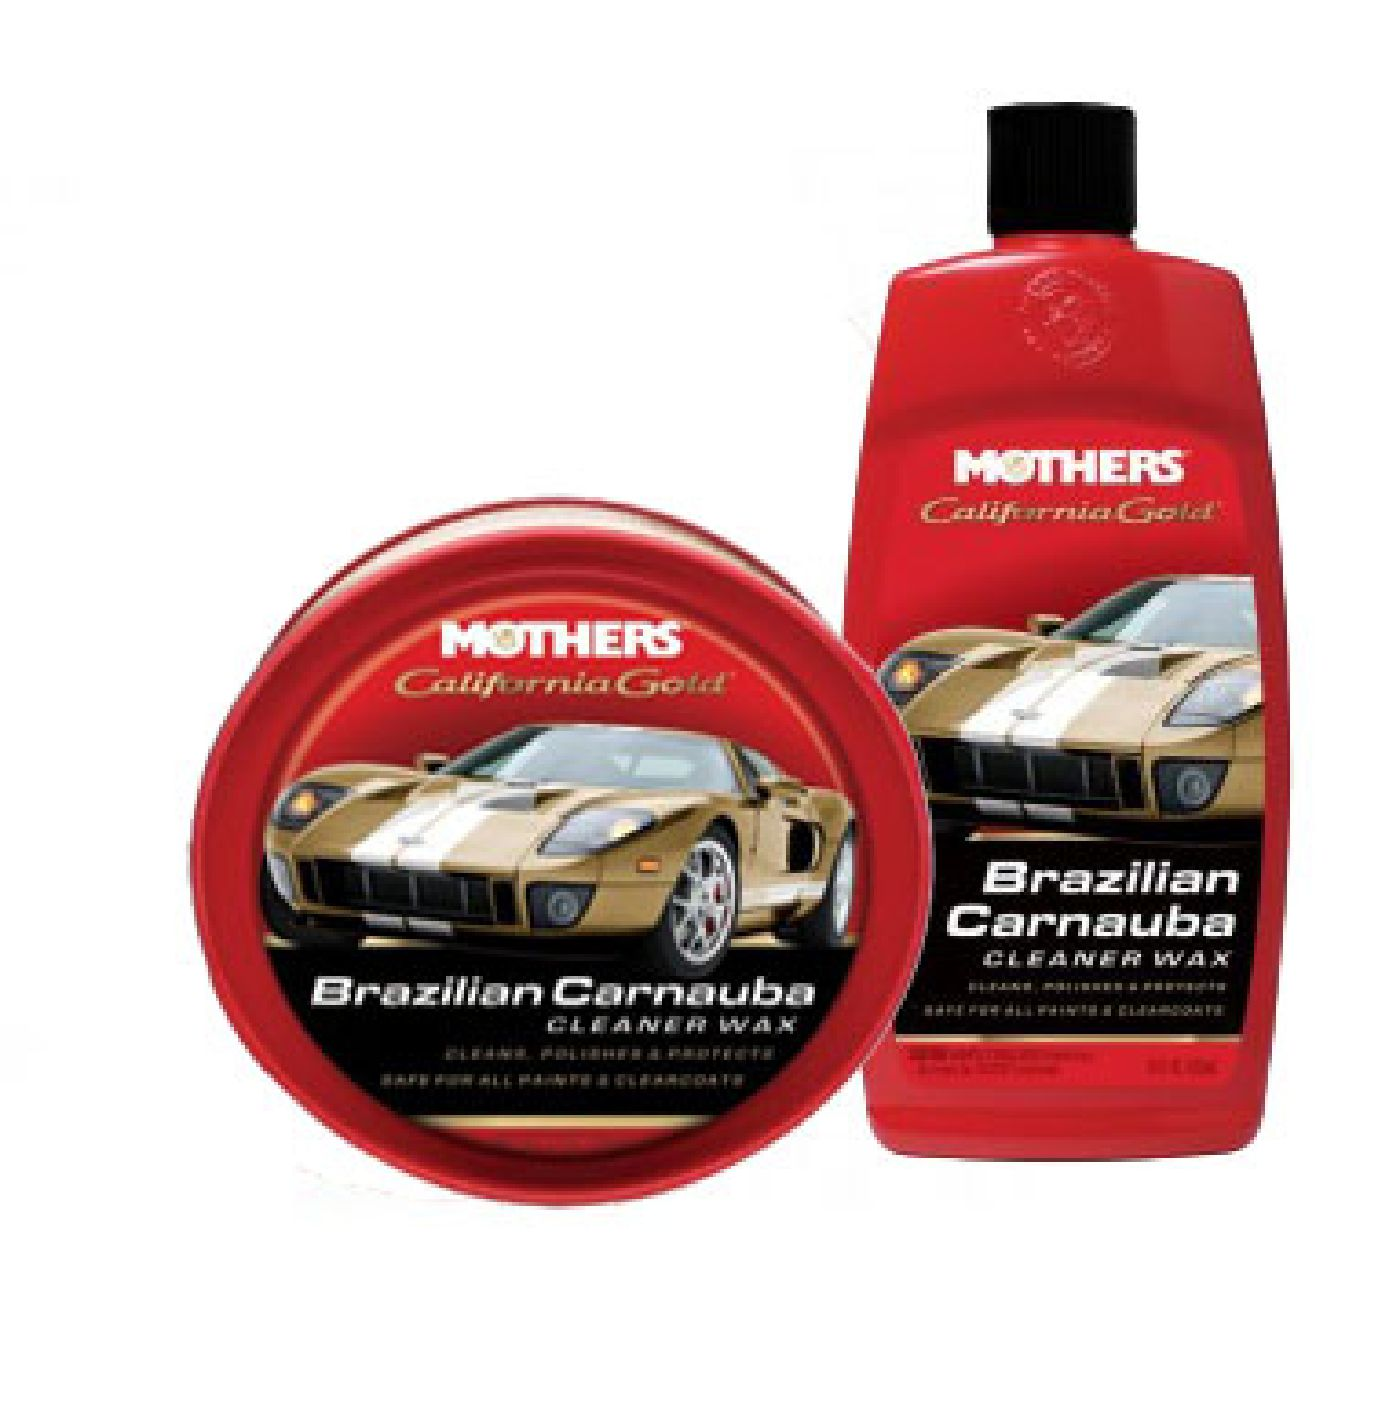 California gold pure brazillian carnauba wax